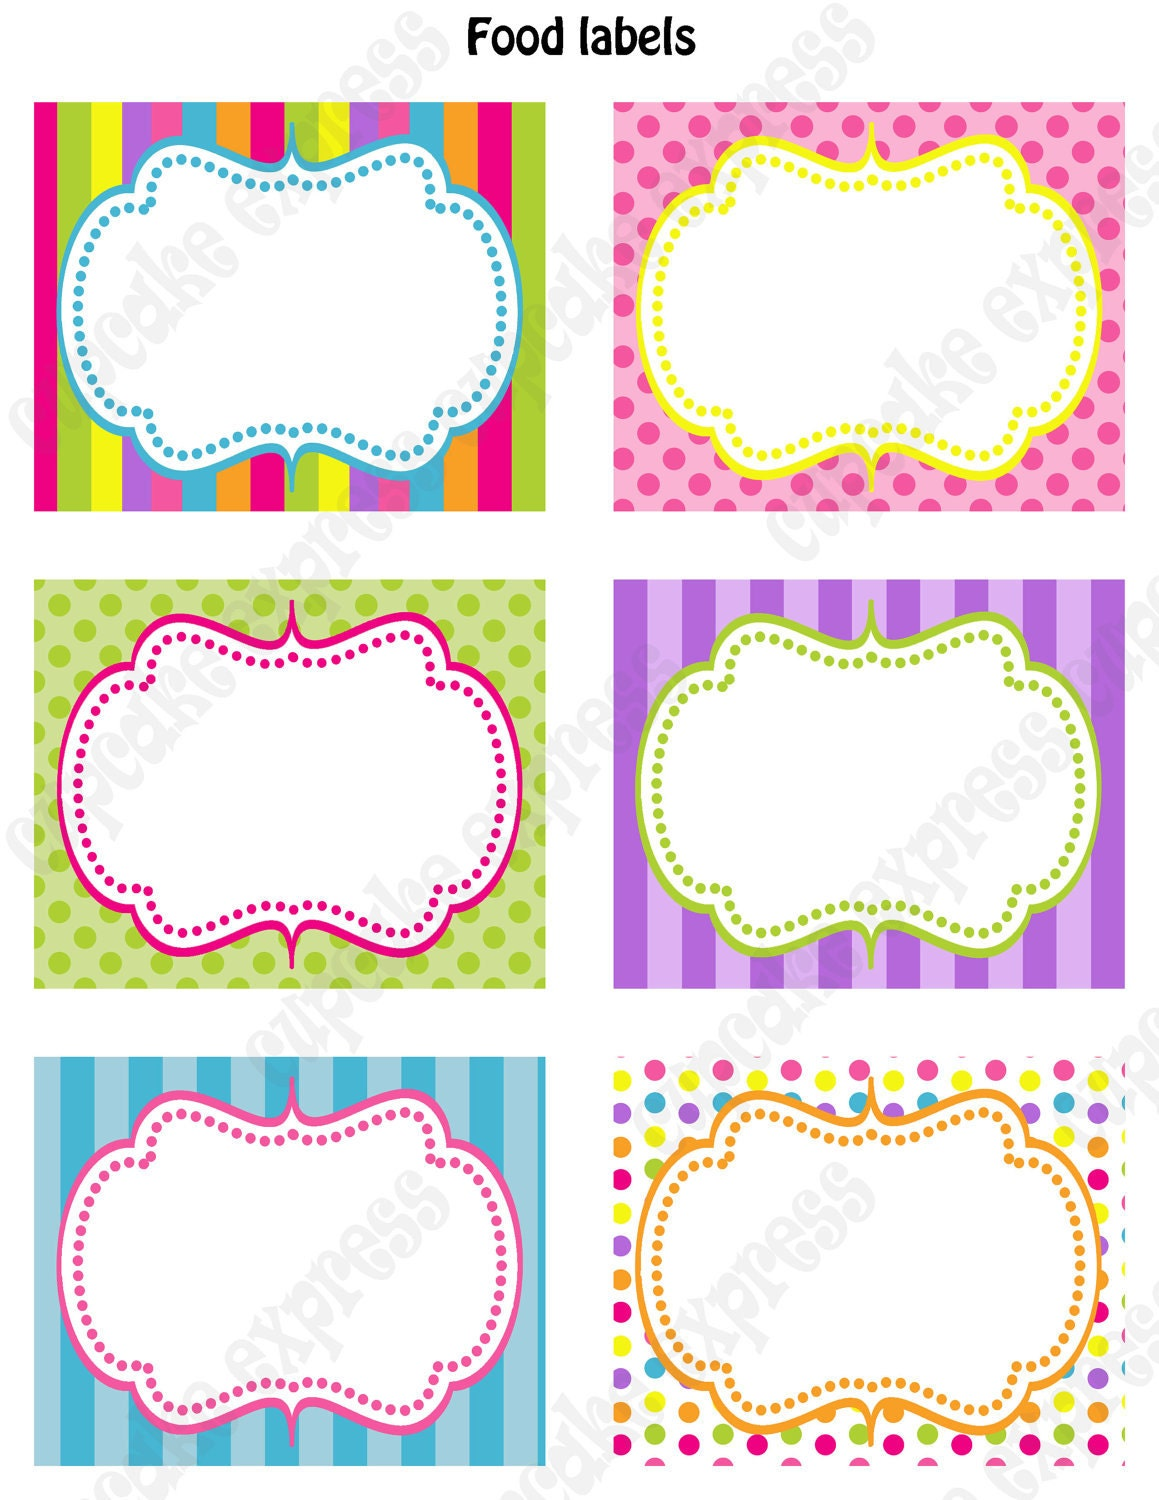 8 up label template - candy shoppe birthday party printable food labels pink green